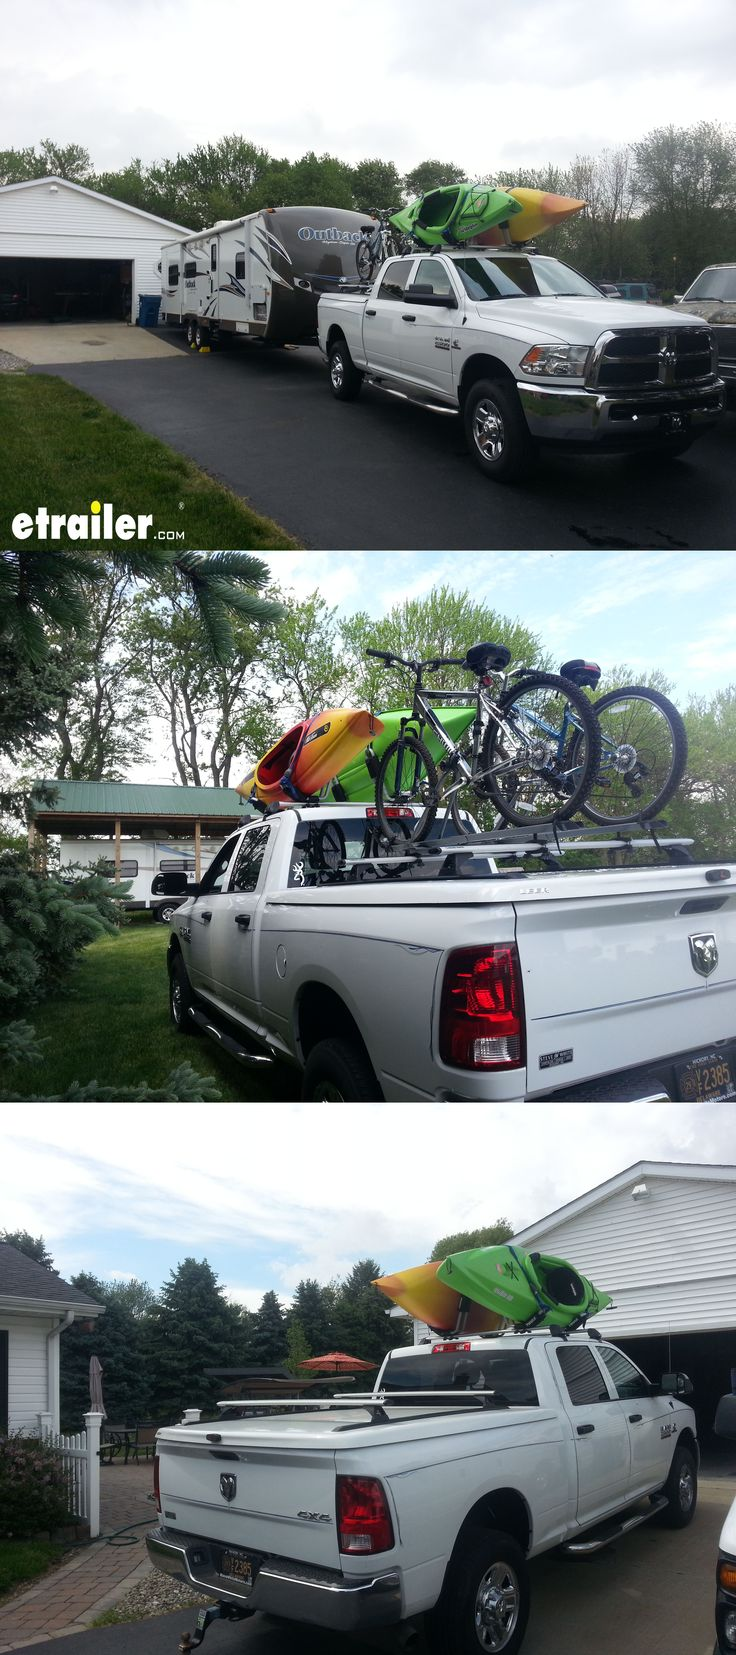 The Dodge Ram Pickup is the ultimate camping, hiking and adventure machine! Transport your gear using the Rhino-Rack RS 2500 Roof Rack this summer and make sure your kayaks and bikes get to and from the destination safely!